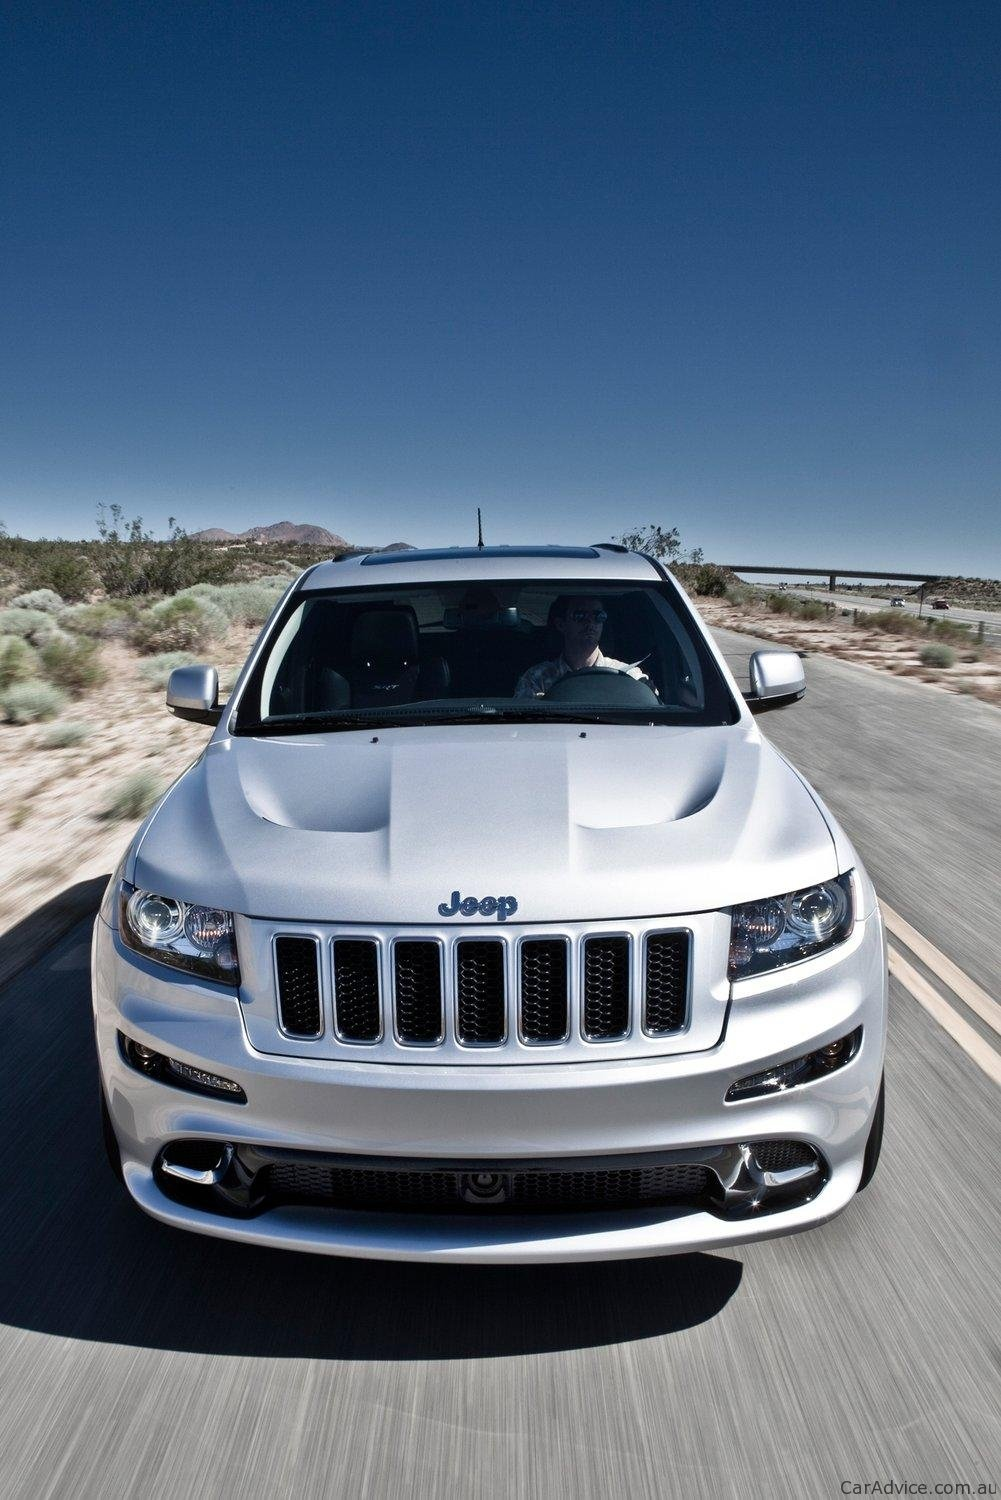 2012 jeep grand cherokee srt8 on sale in australia in january photos caradvice. Black Bedroom Furniture Sets. Home Design Ideas